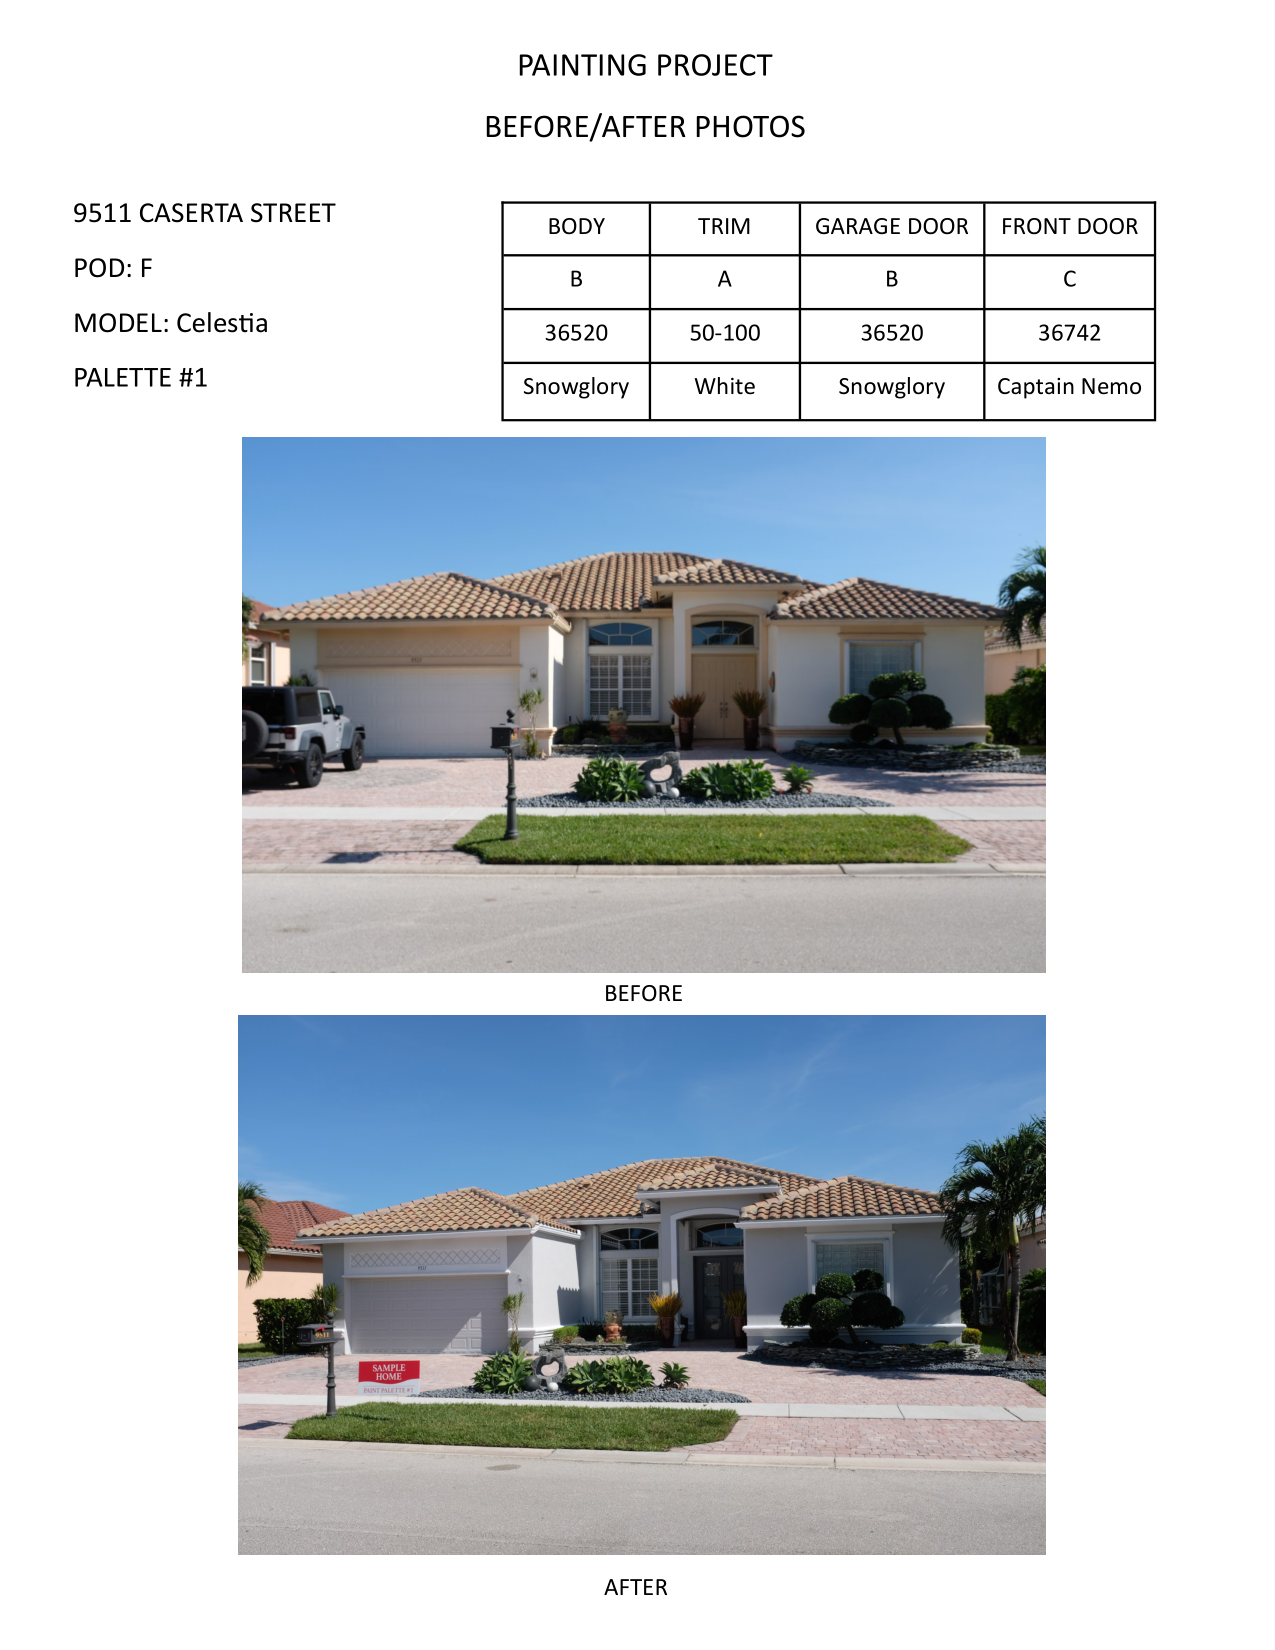 b4aftersample homes pictures.png